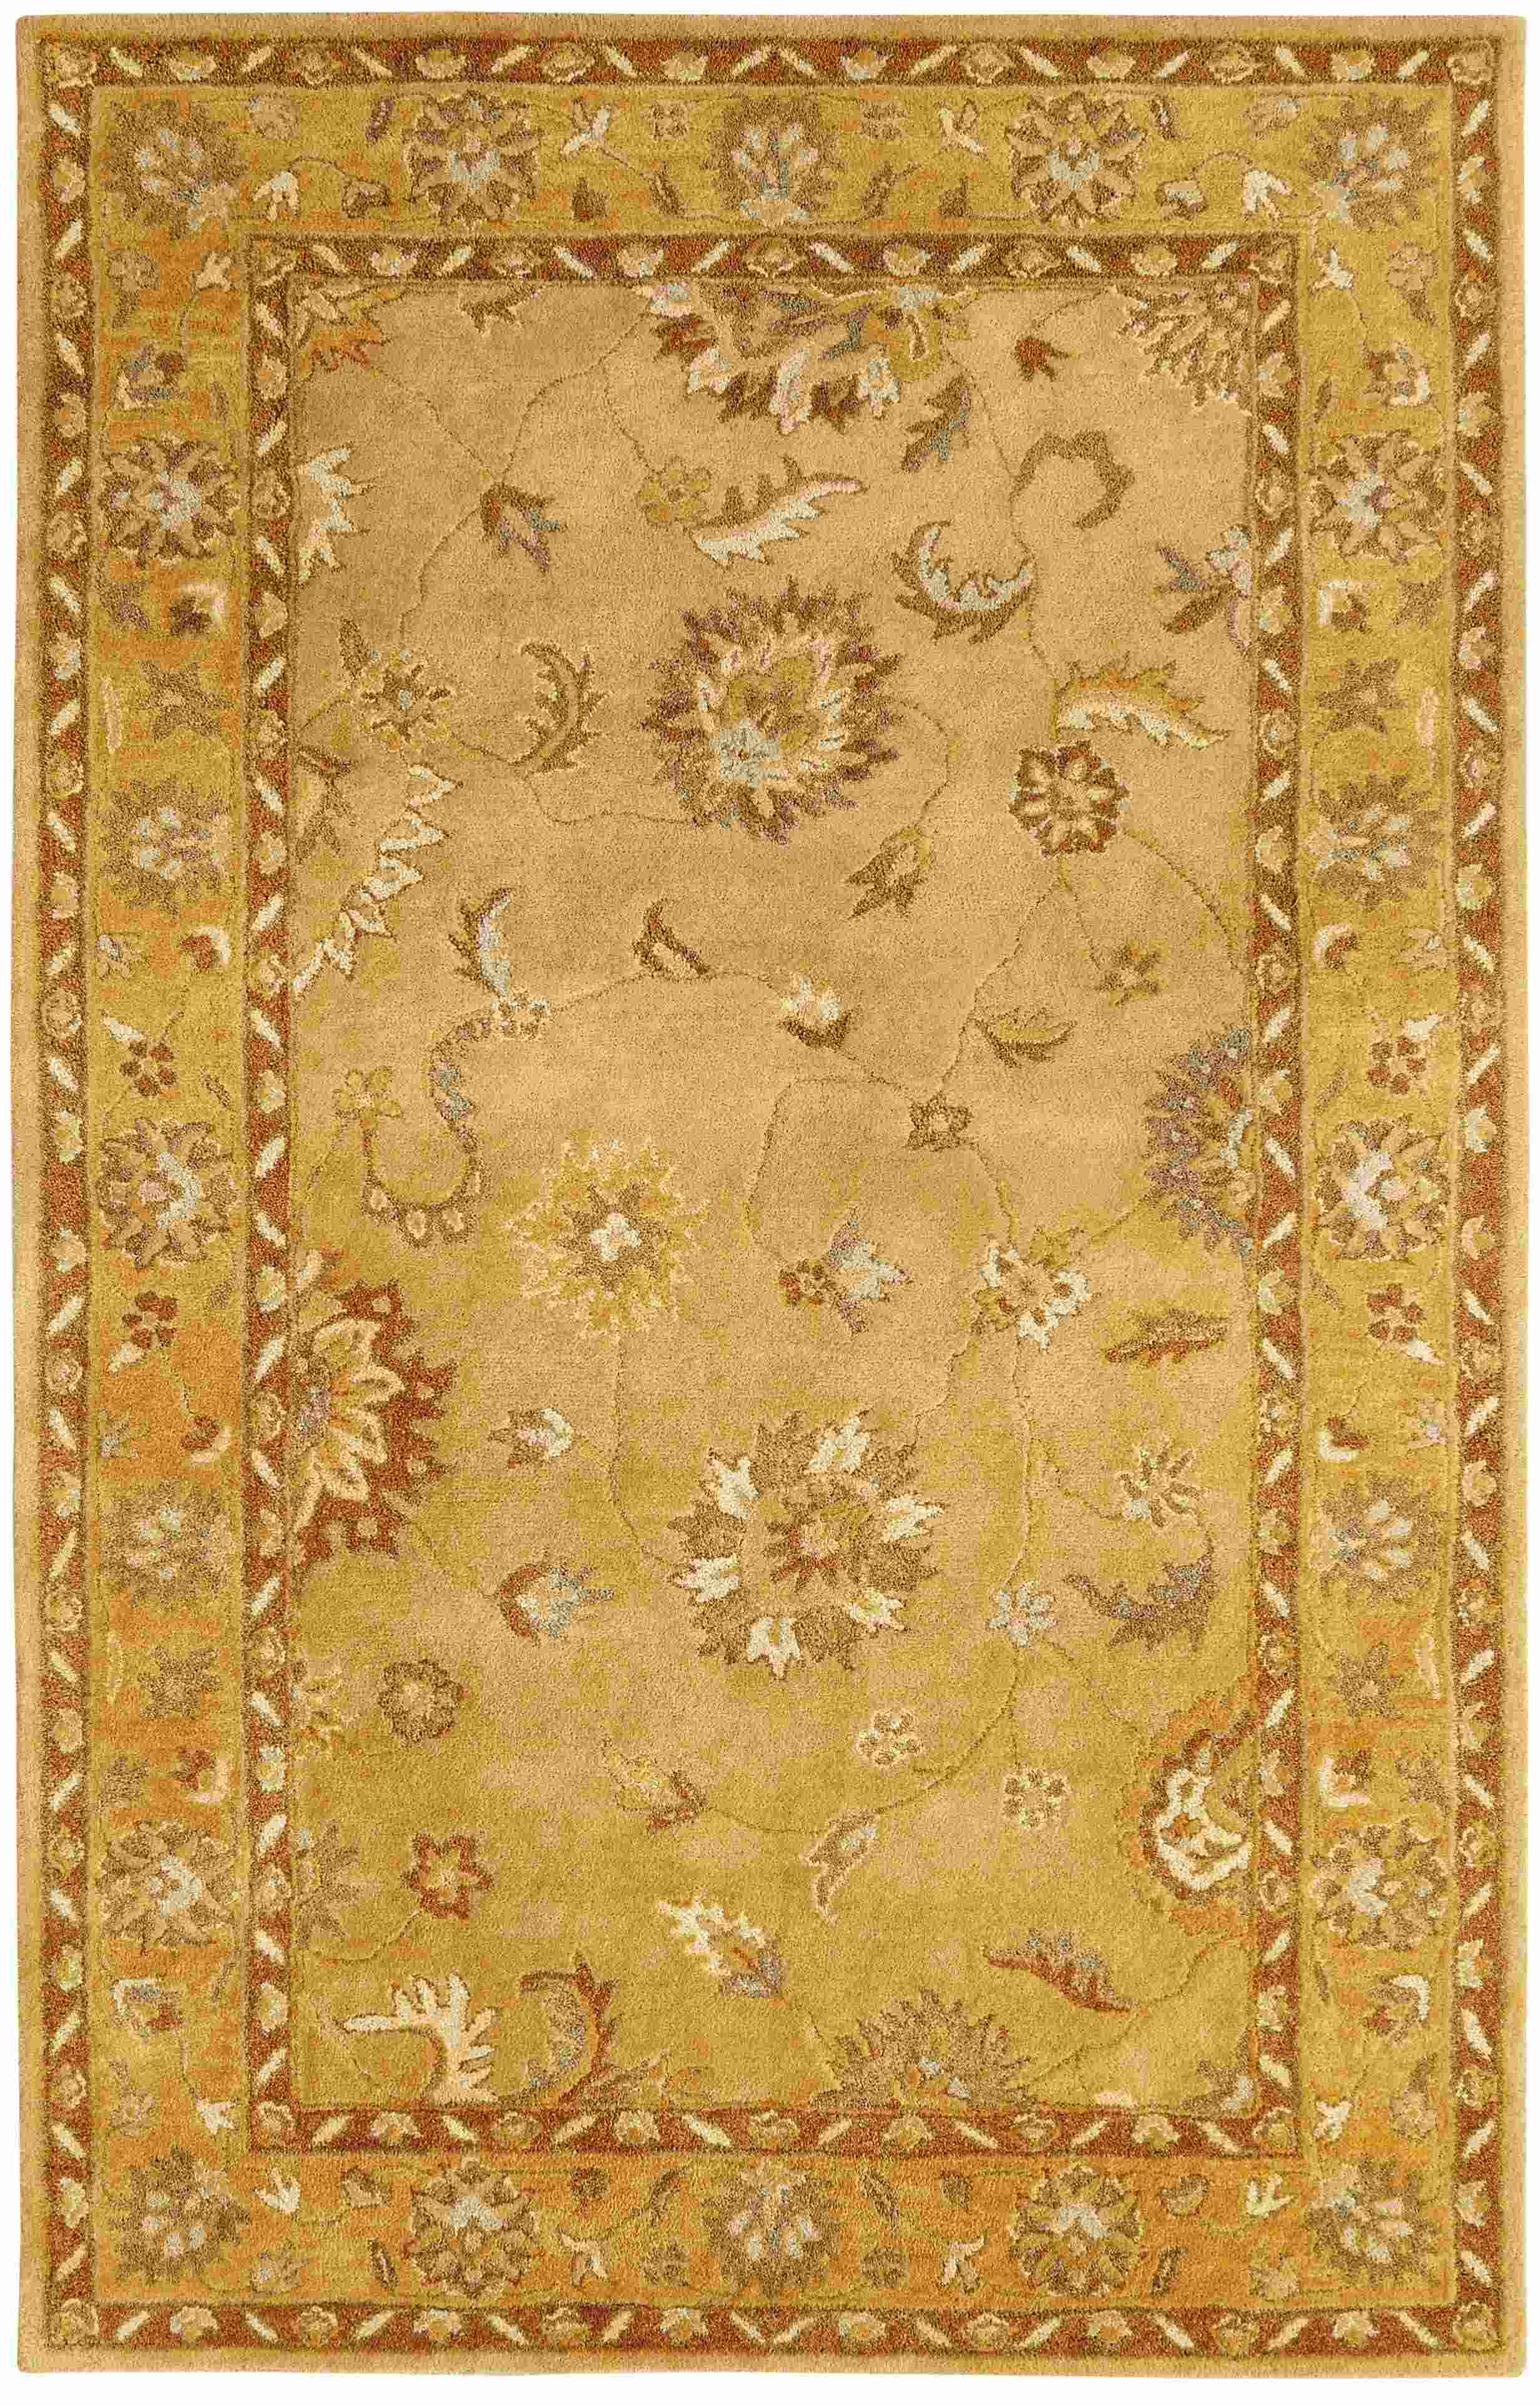 Dynamic Rugs Charisma Classic Gold 1416 Area Rug